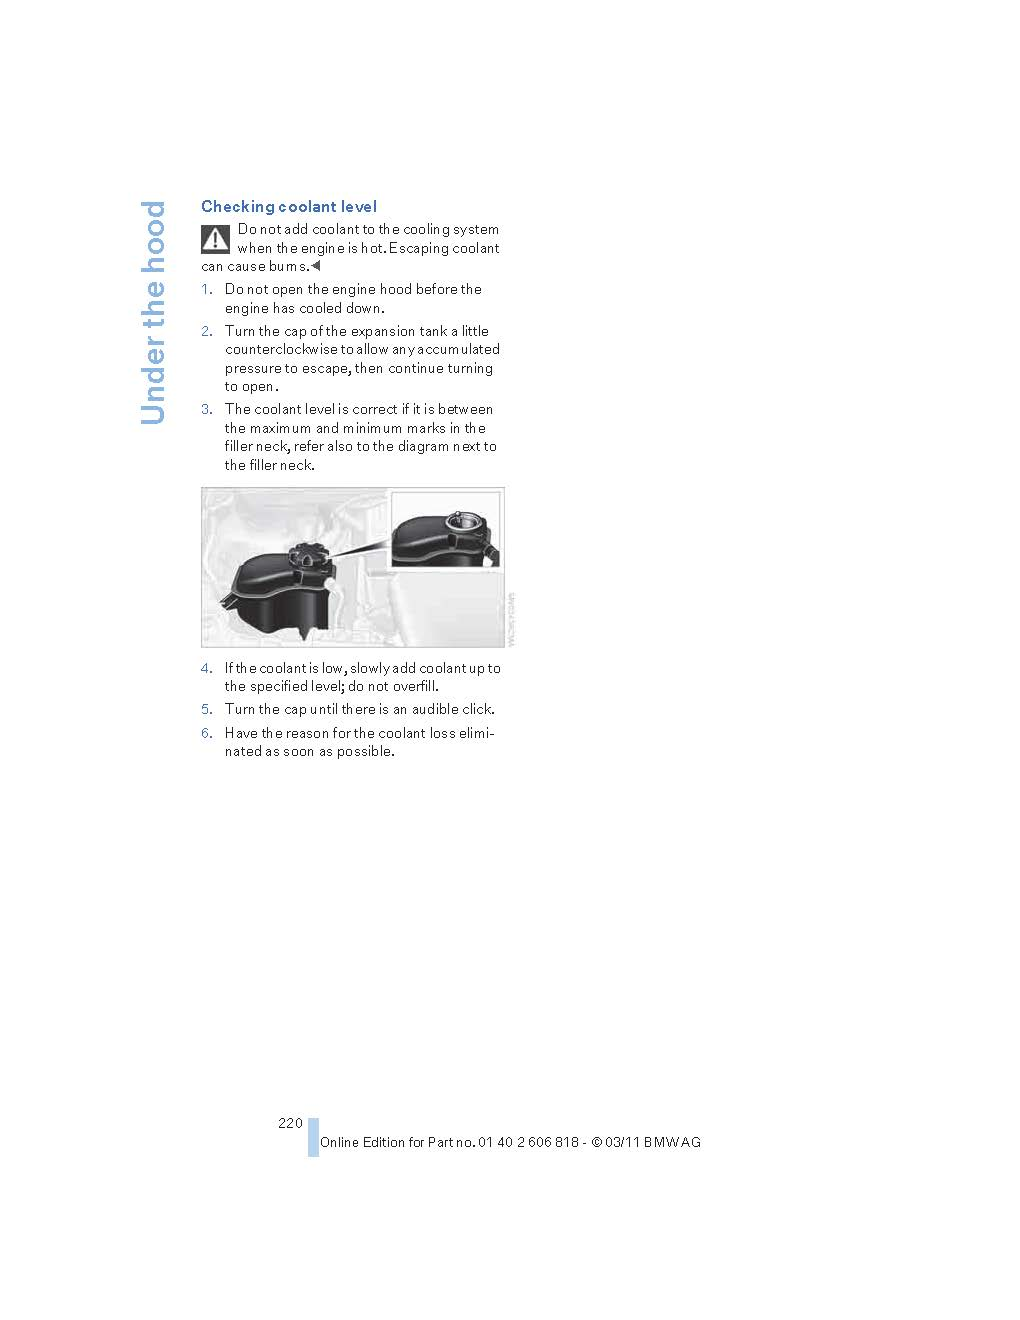 Engine Coolant Level Too Low Warning Bmw Light Name Manual 2 Views 43721 Size 657 Kb